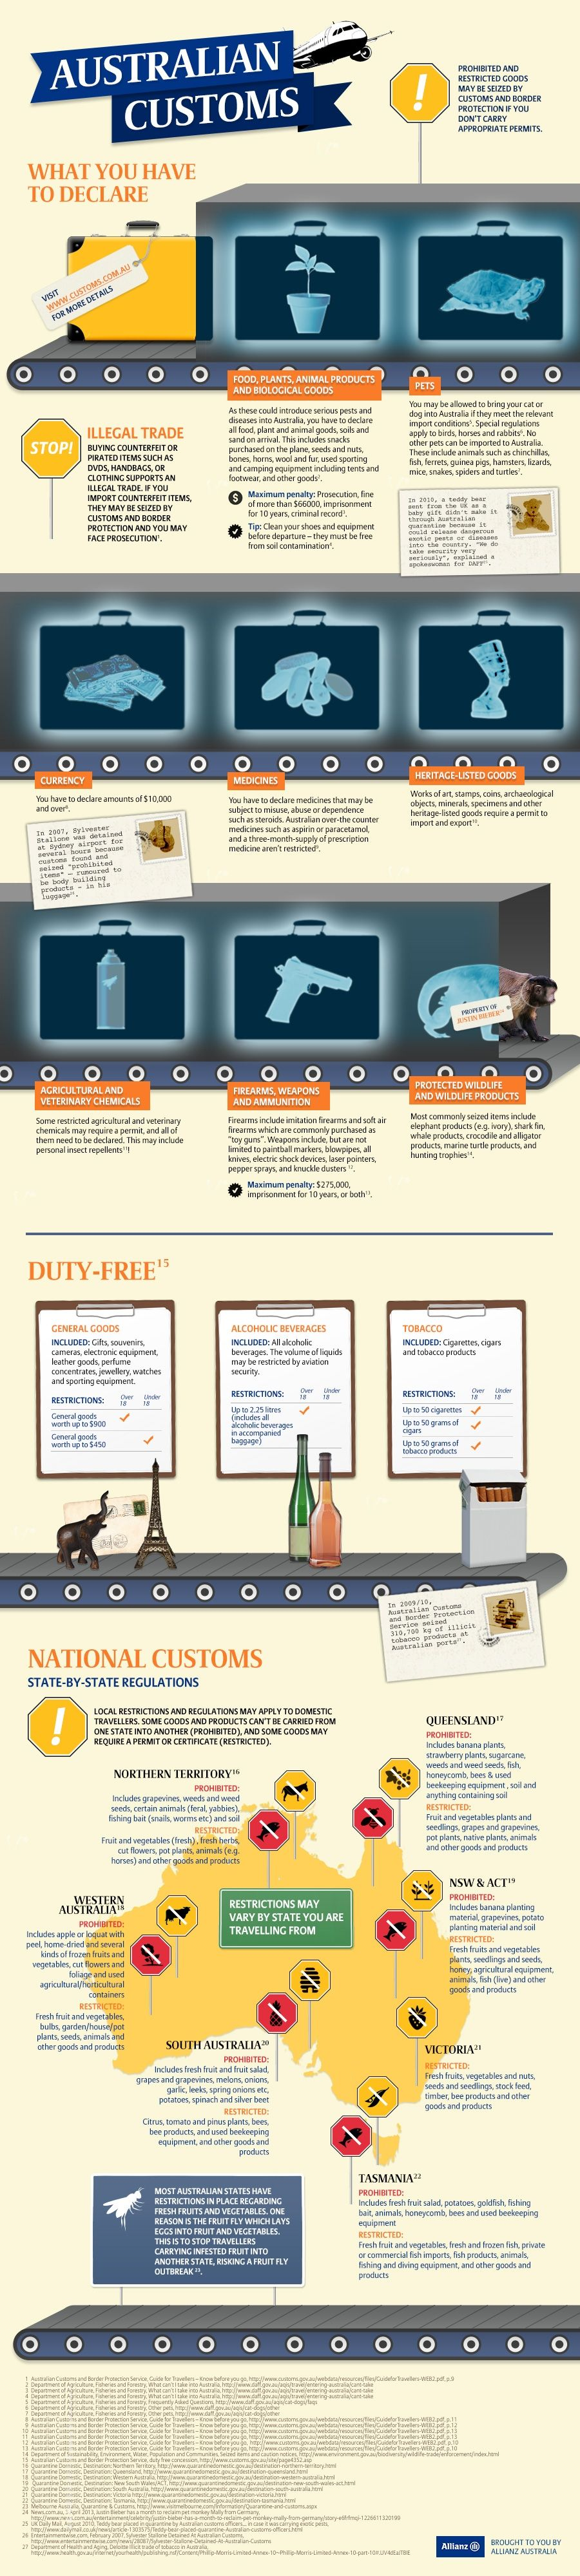 Australian Customs: What You Must Declare #infographic